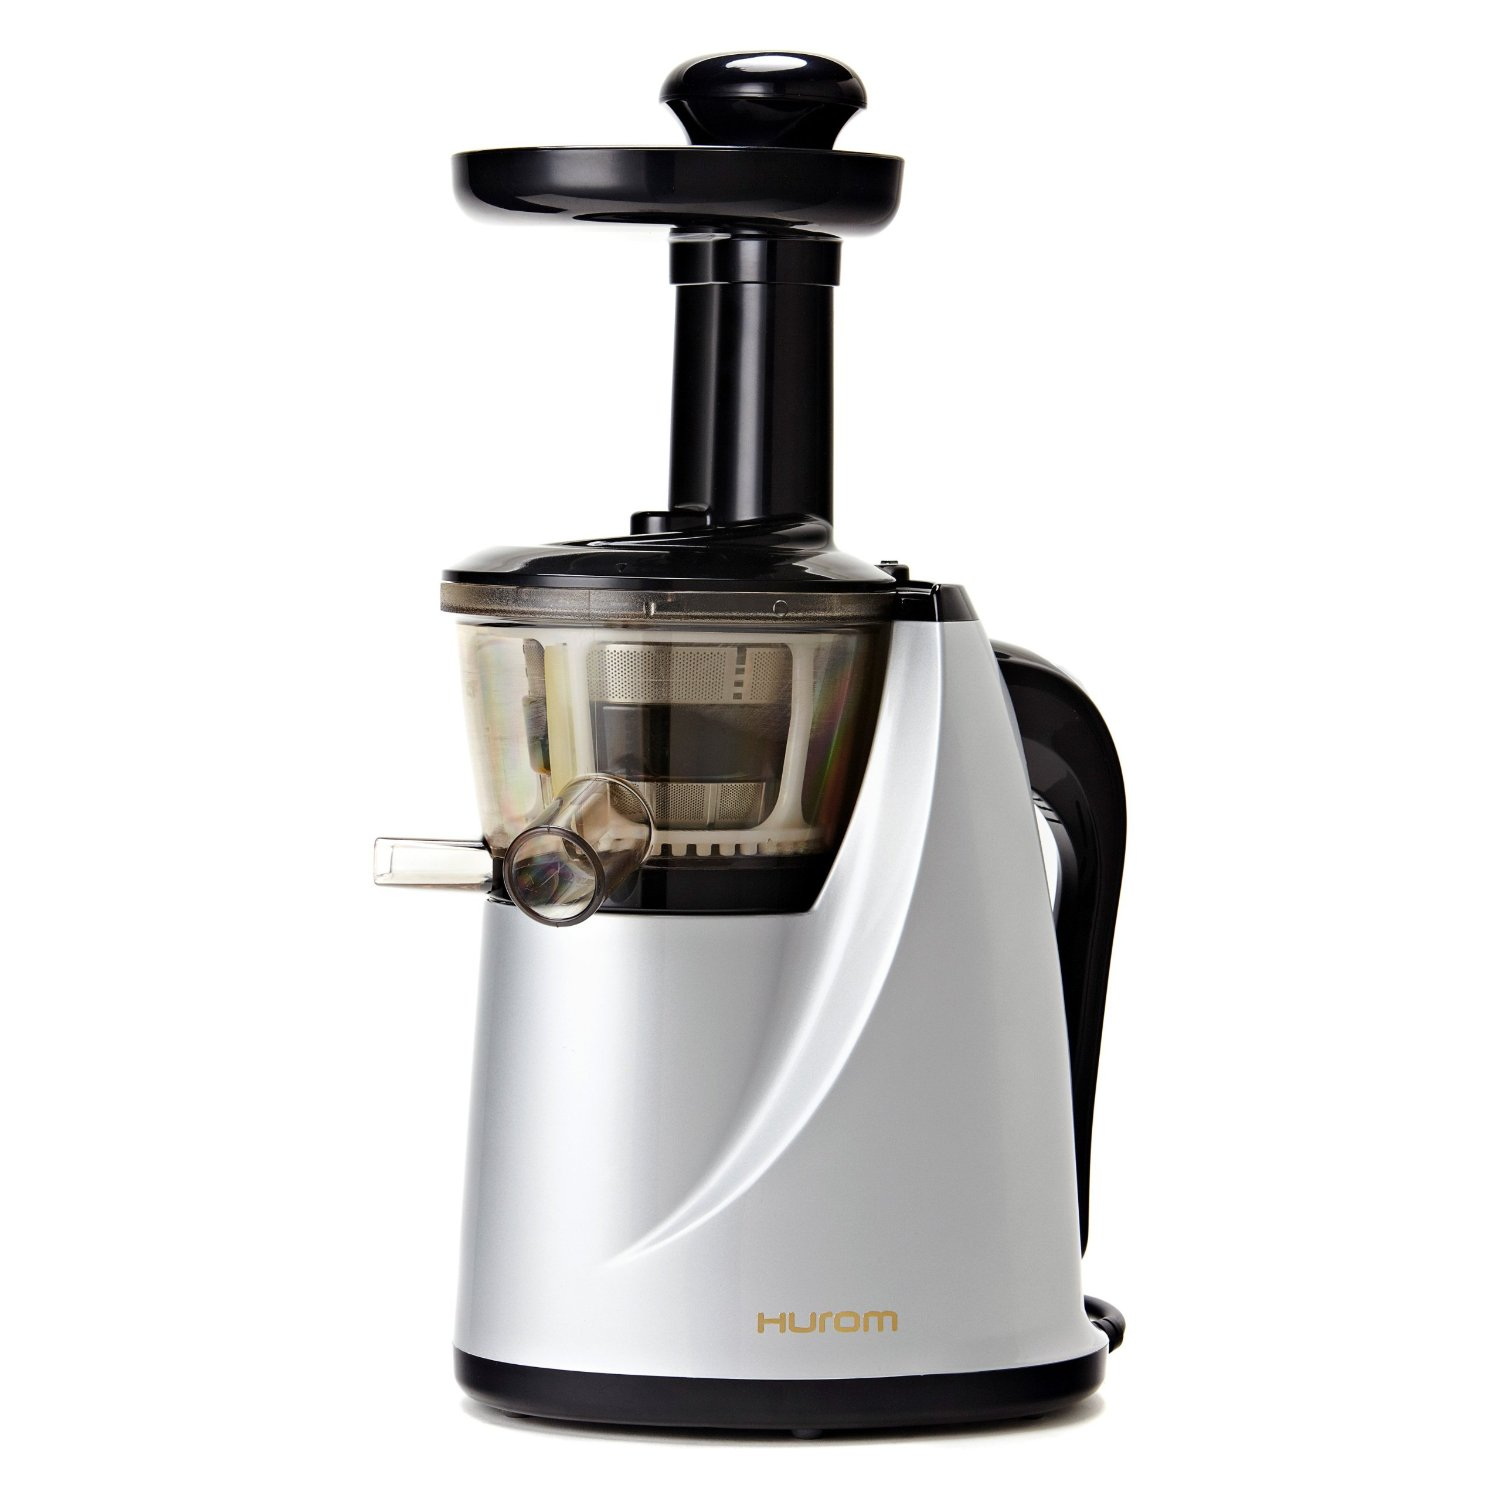 Cooksense Slow Juicer Review : Hurom HU-100 Masticating Slow Juicer Review - Best Cold Press Juicers